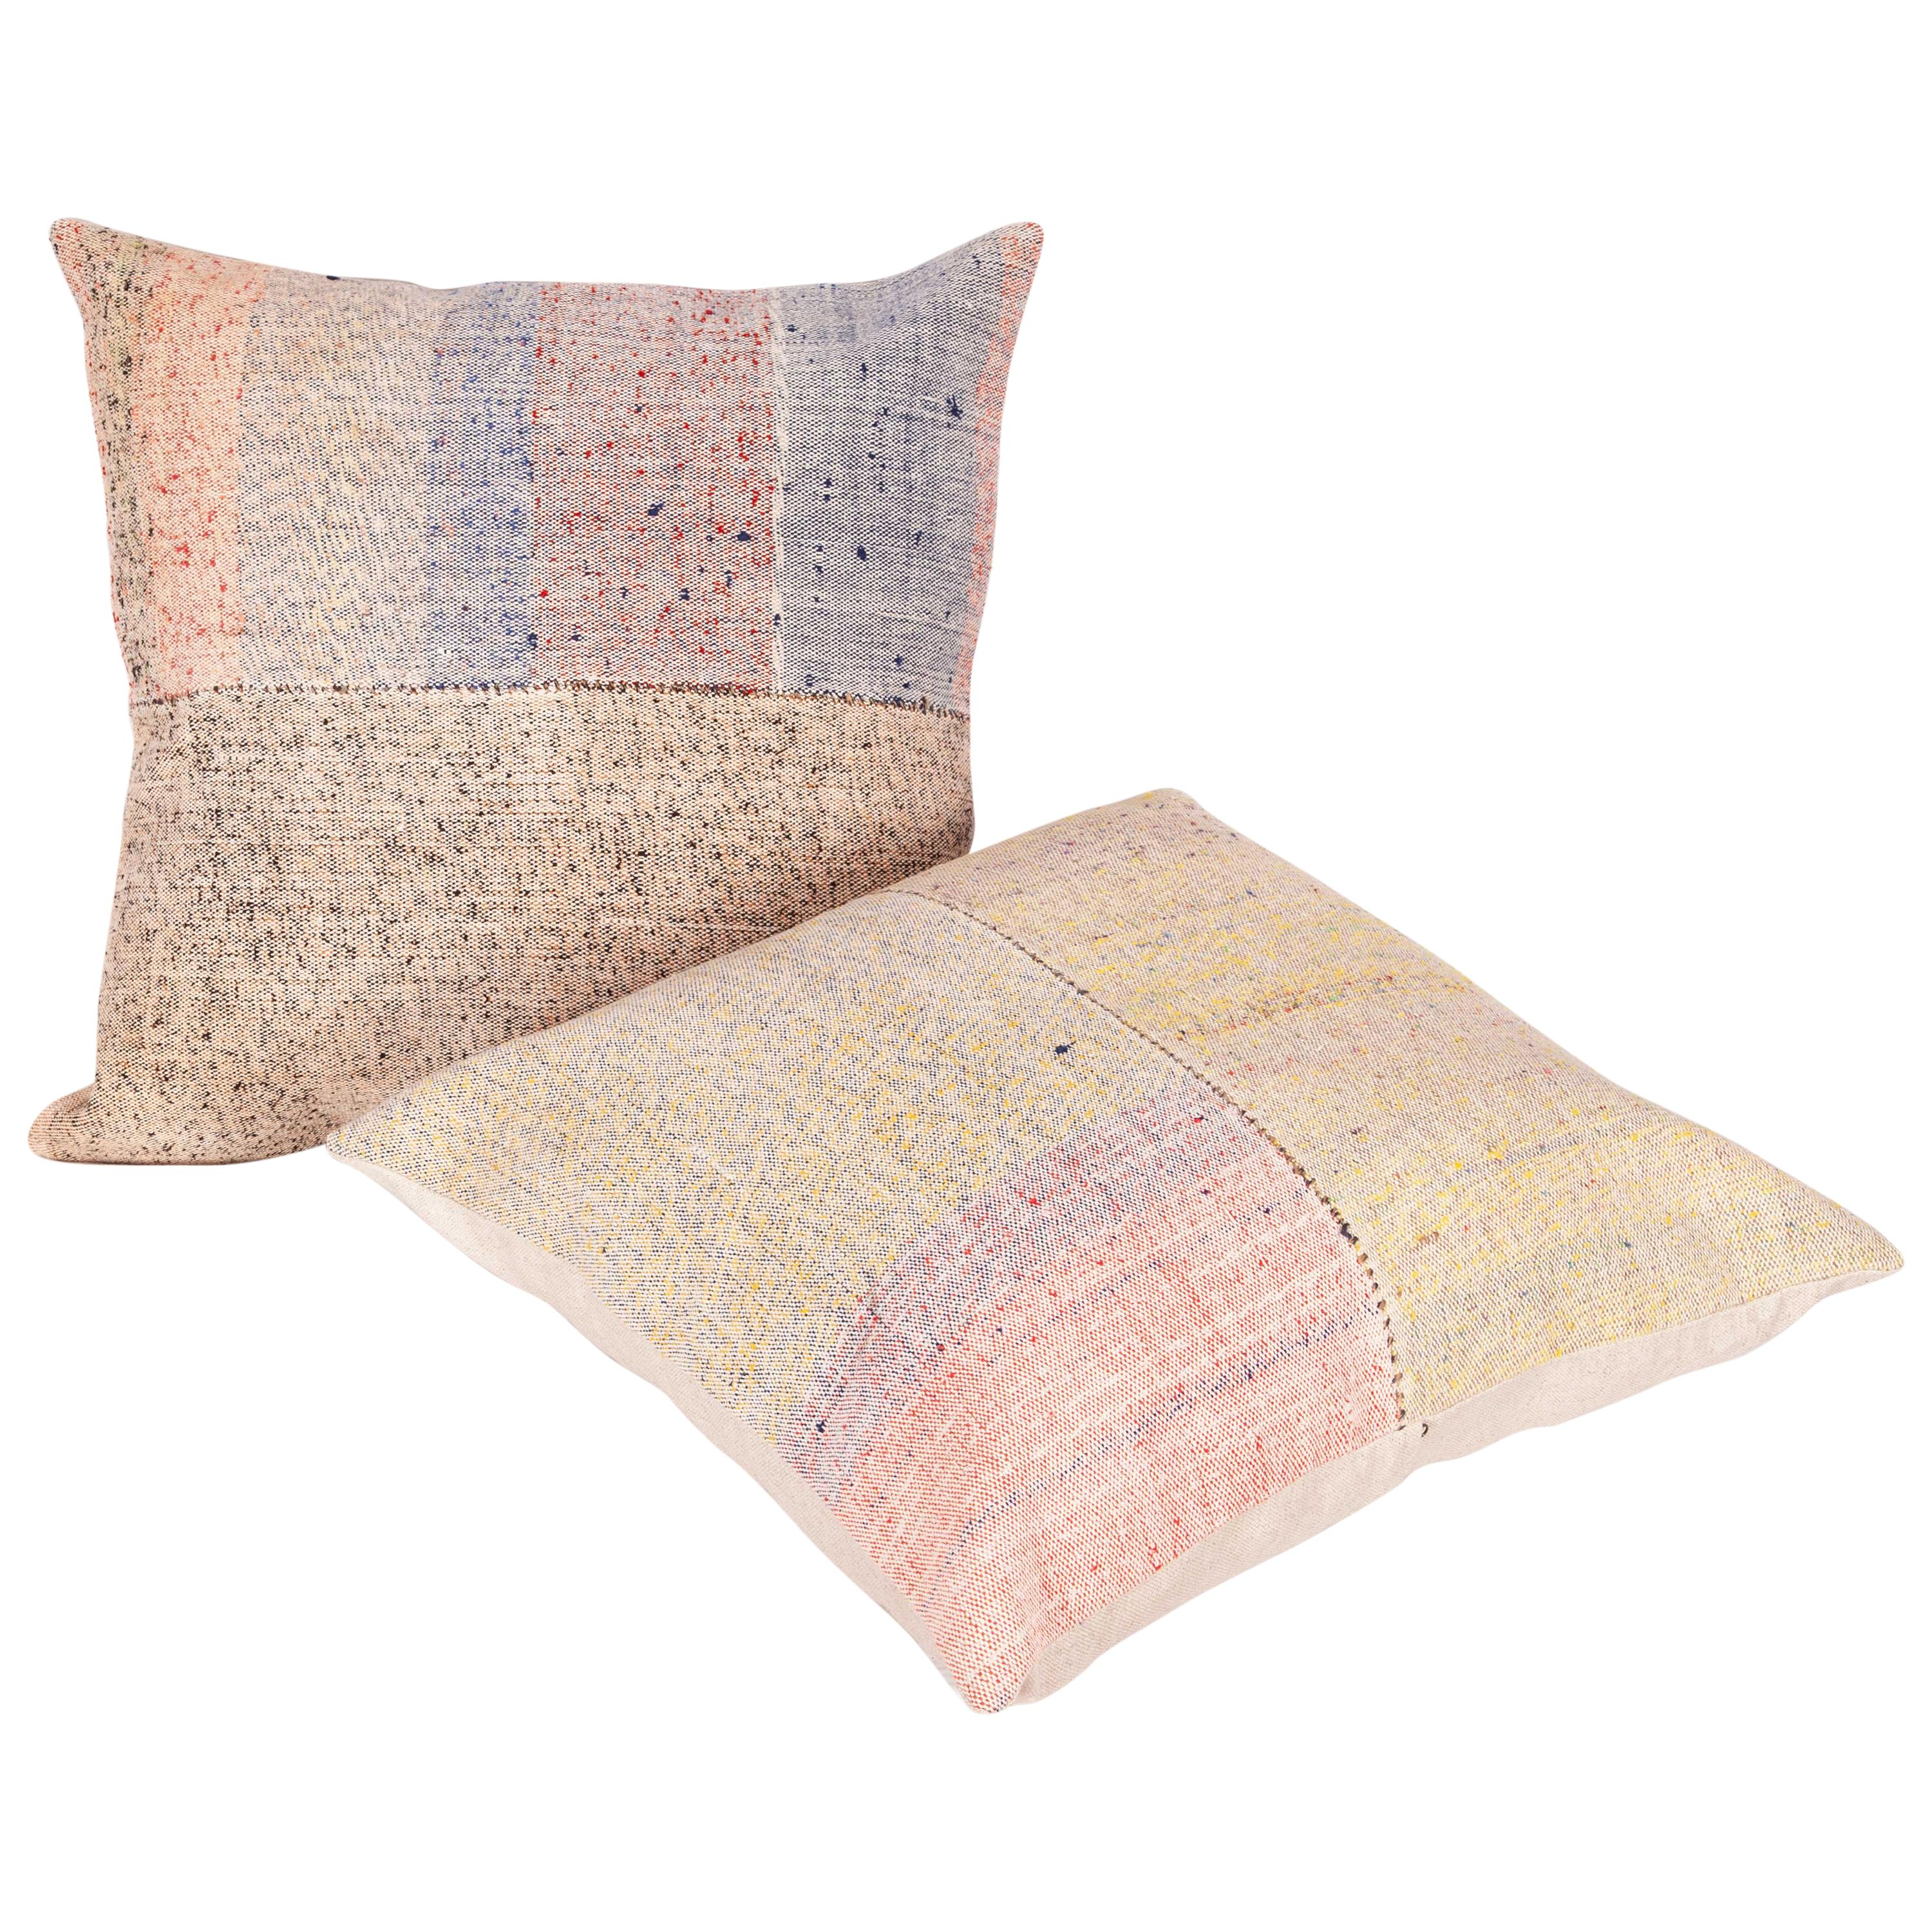 Kilim Pillow Cases Made from a Vintage Anatolian Kilim